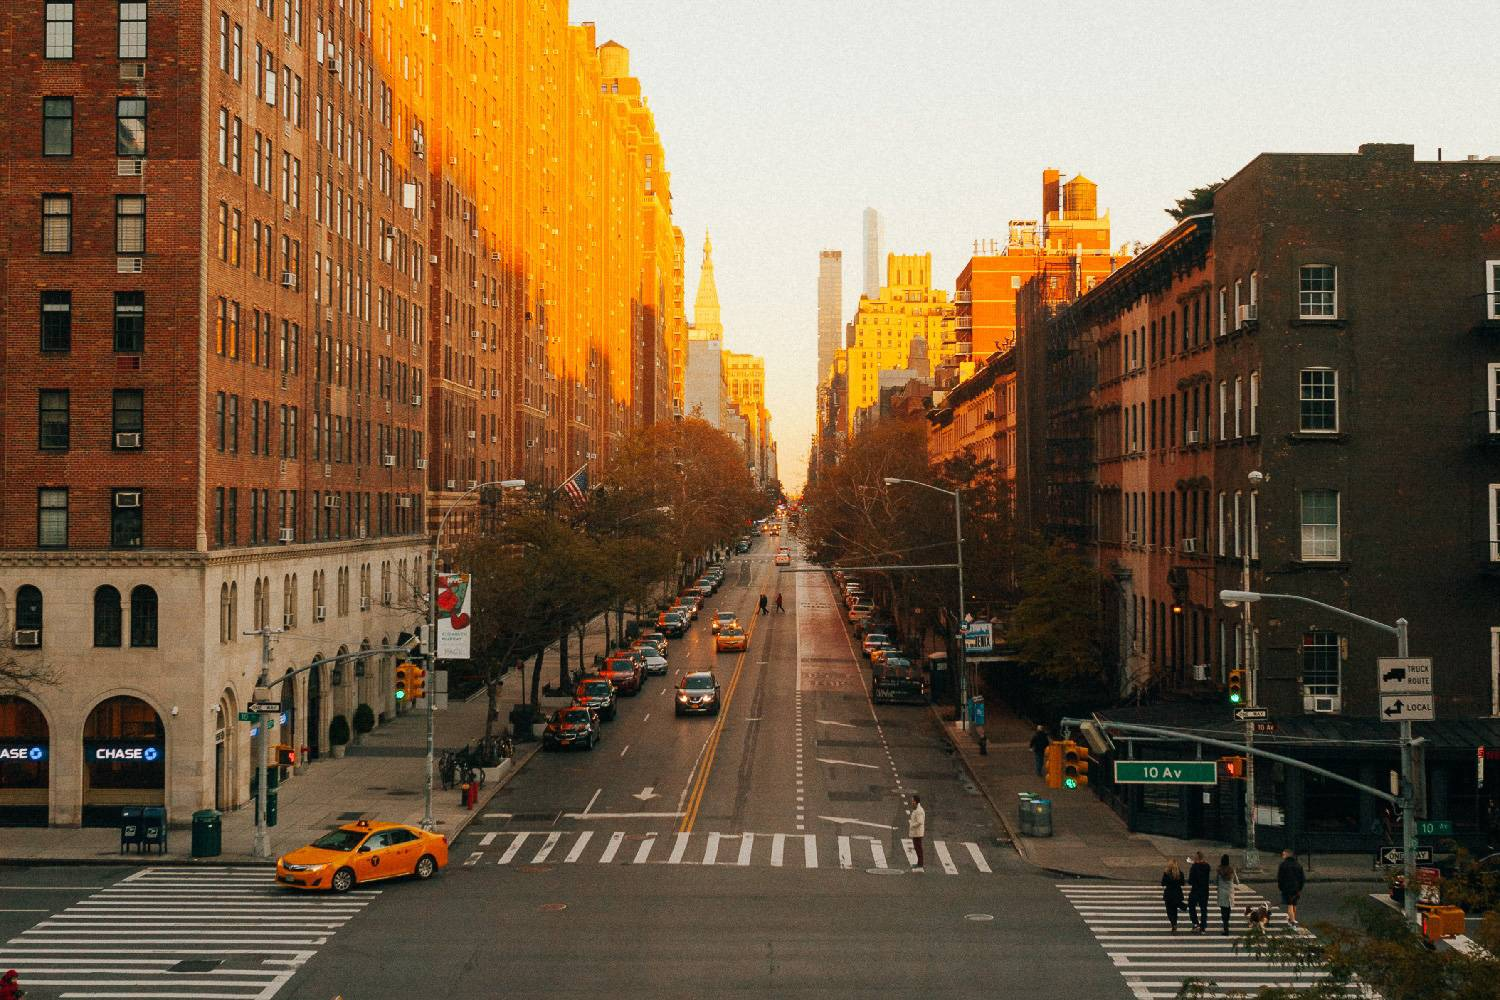 Image of 10th Avenue in Chelsea at sunset during the autumn season.